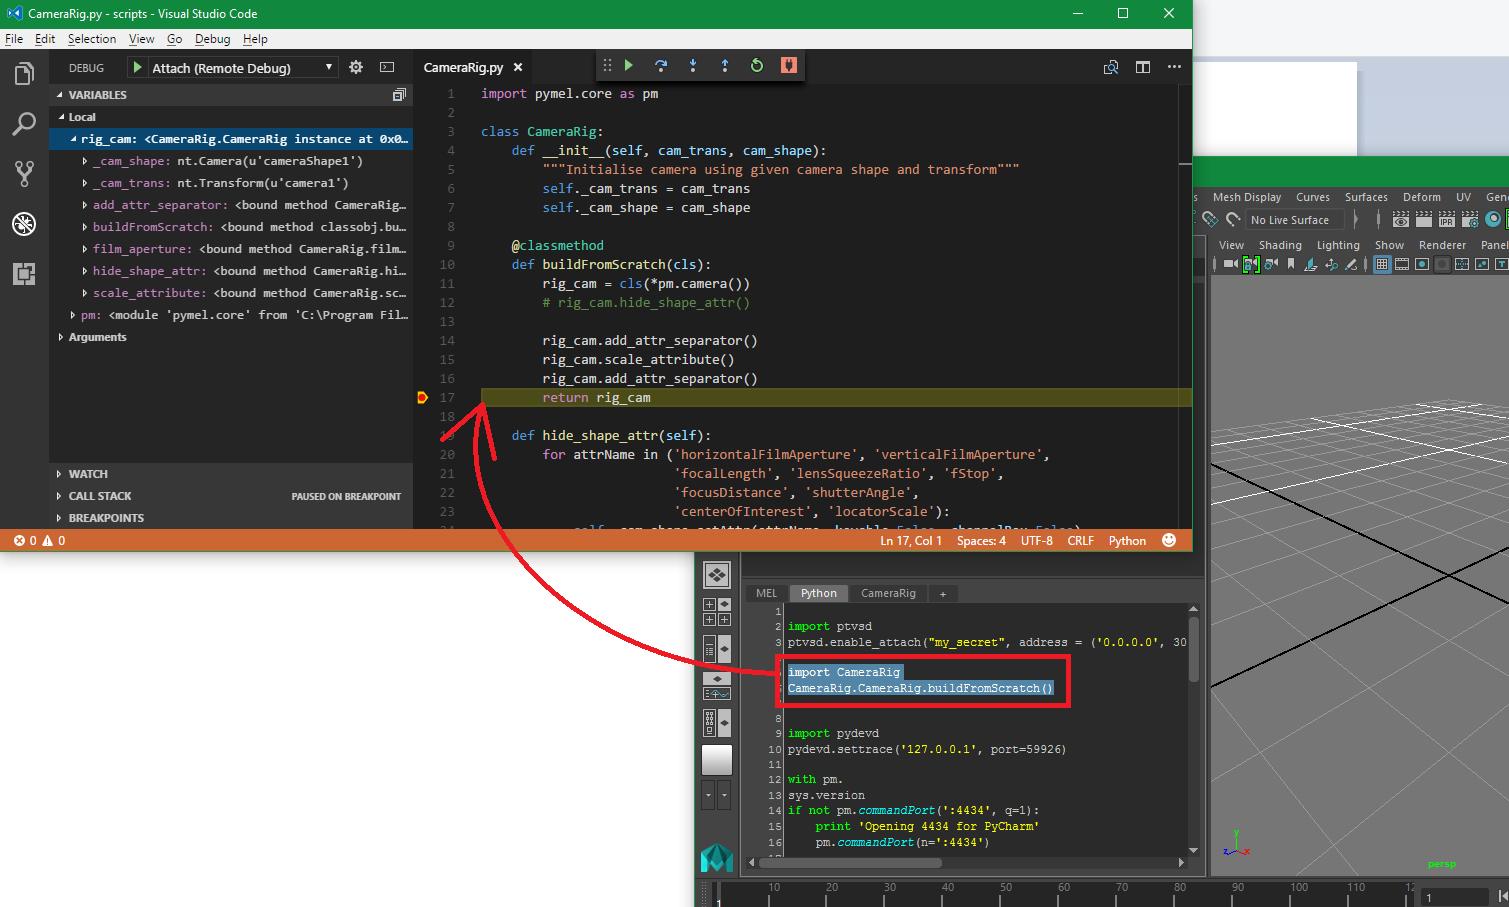 Debugging Maya using Visual Studio Code